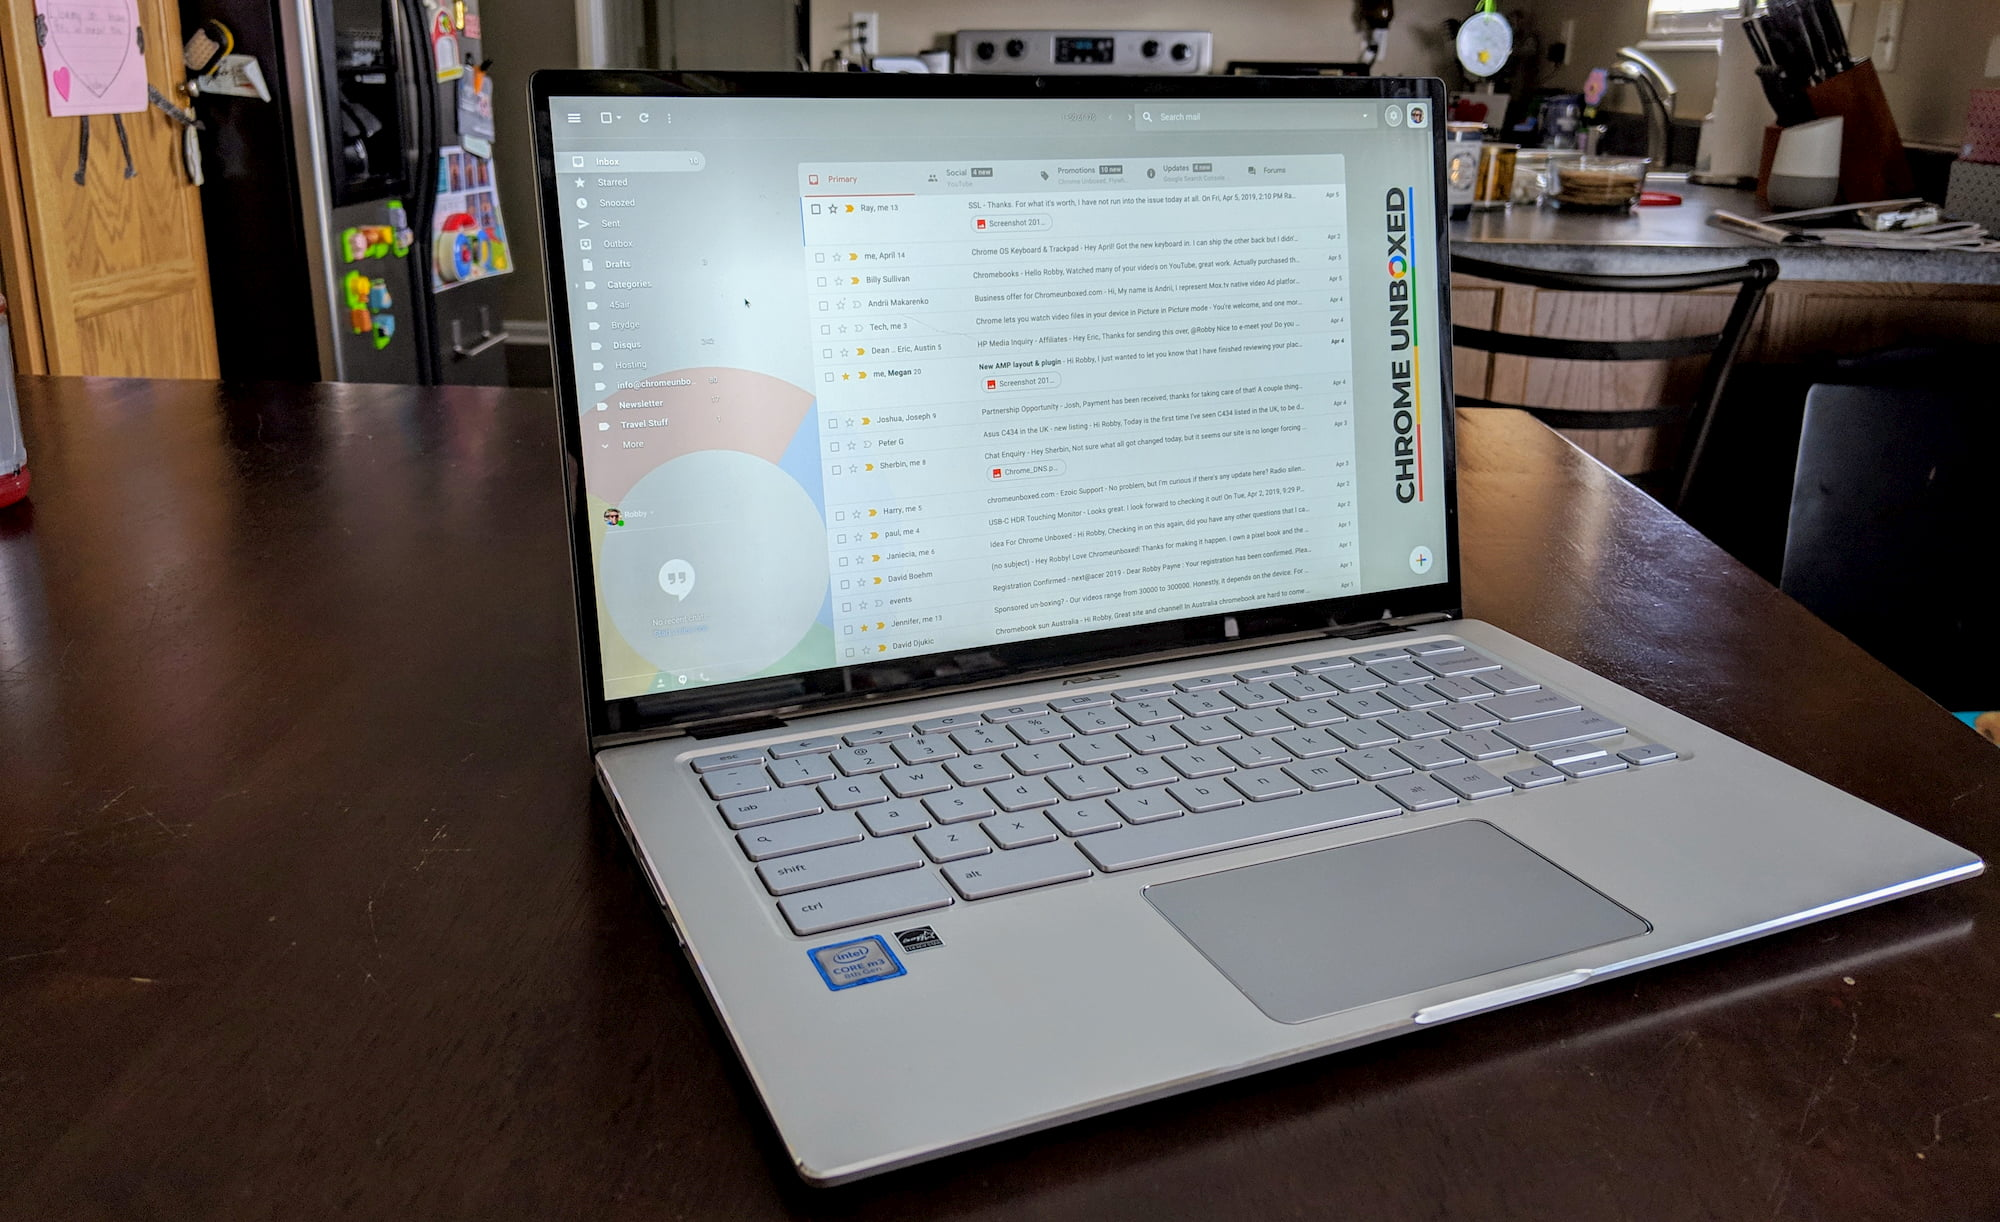 The Latest Chrome OS News - Chrome Unboxed